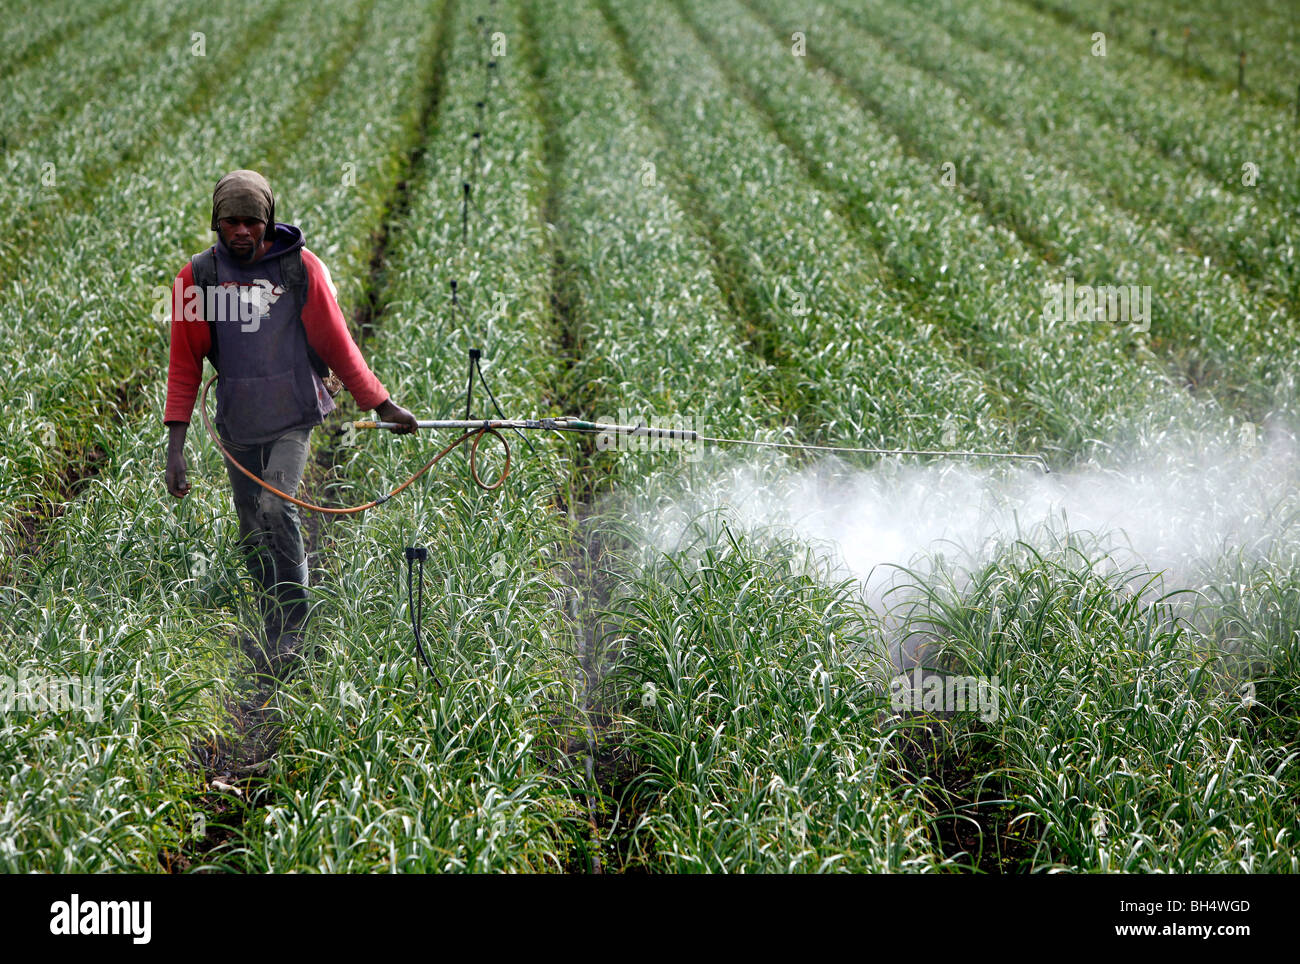 Fungicide Stock Photos & Fungicide Stock Images - Alamy